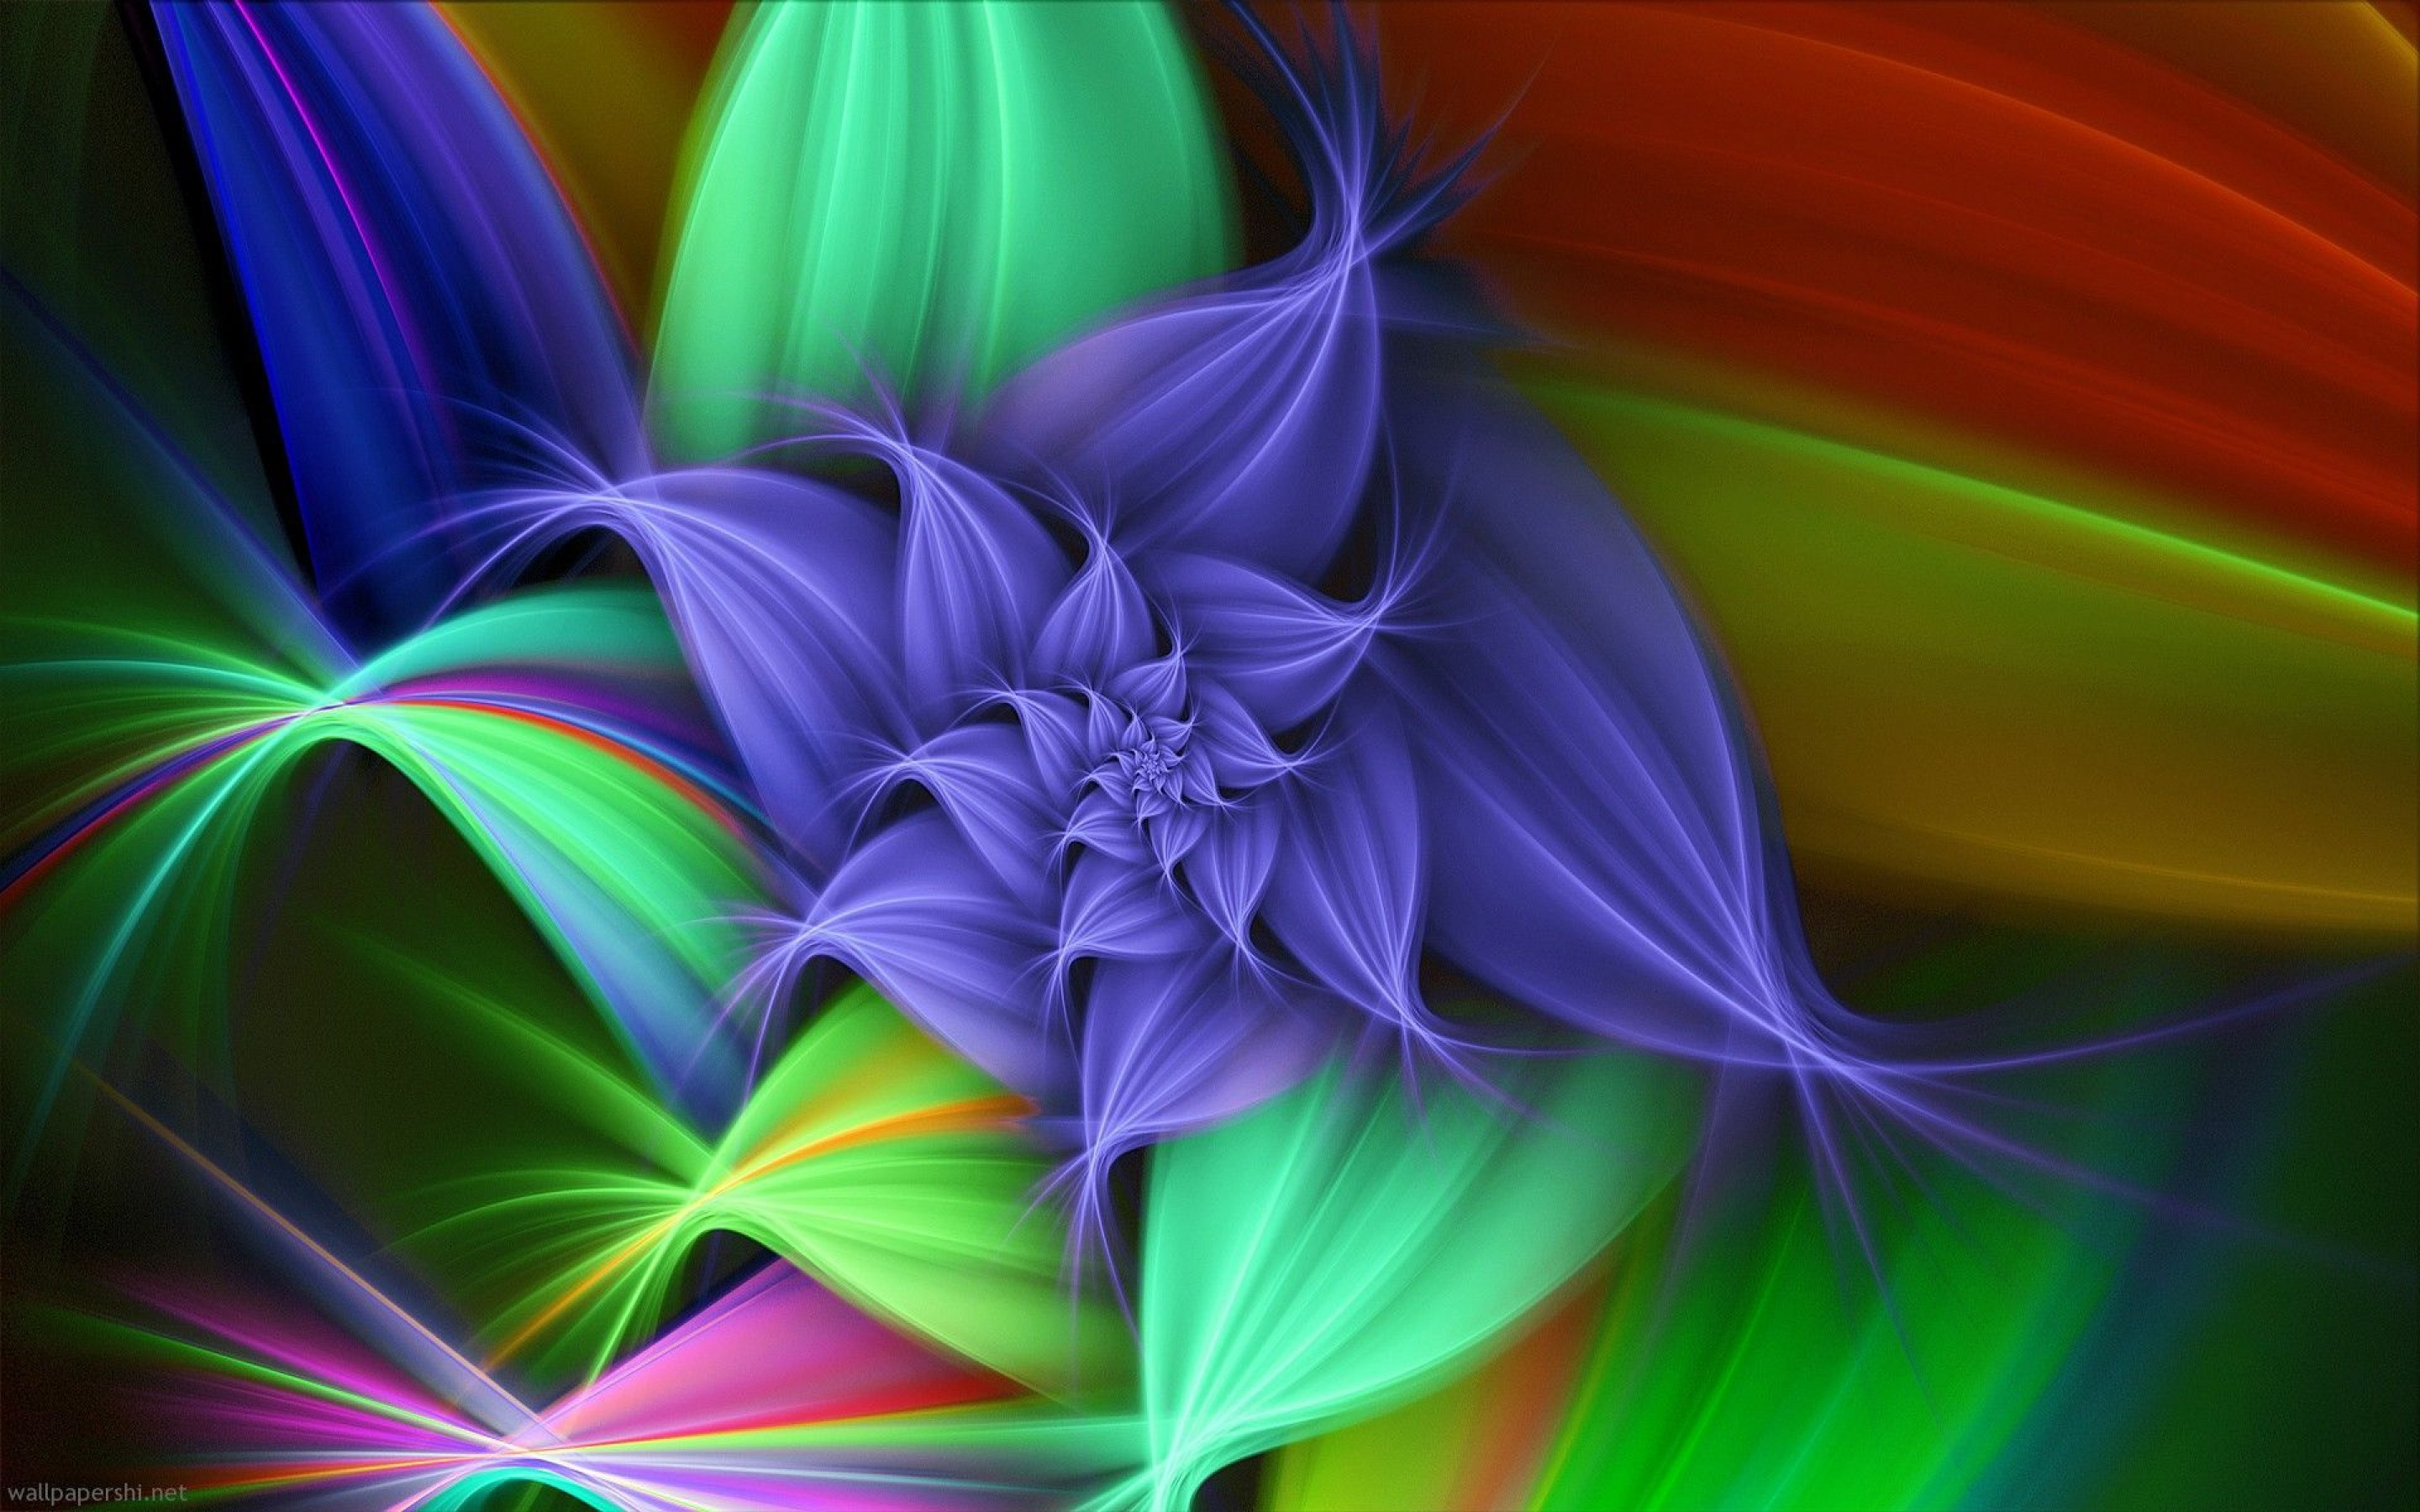 Free Retina Ipad Wallpaper: Ipad Retina Free Wallpaper Abstract Art #6892 Hd